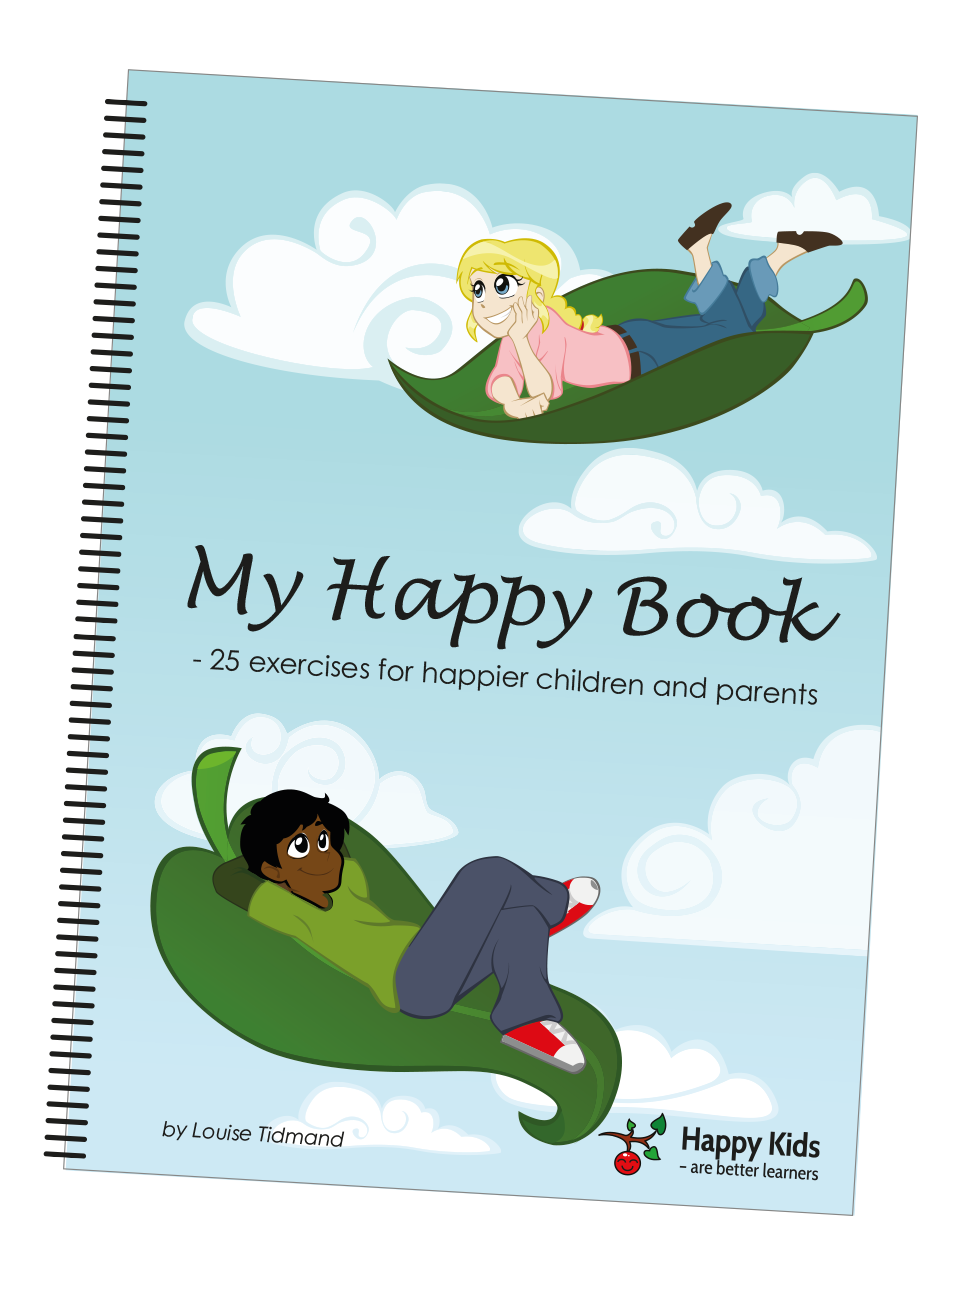 My Happy Book - 25 exercises for happier children and parents